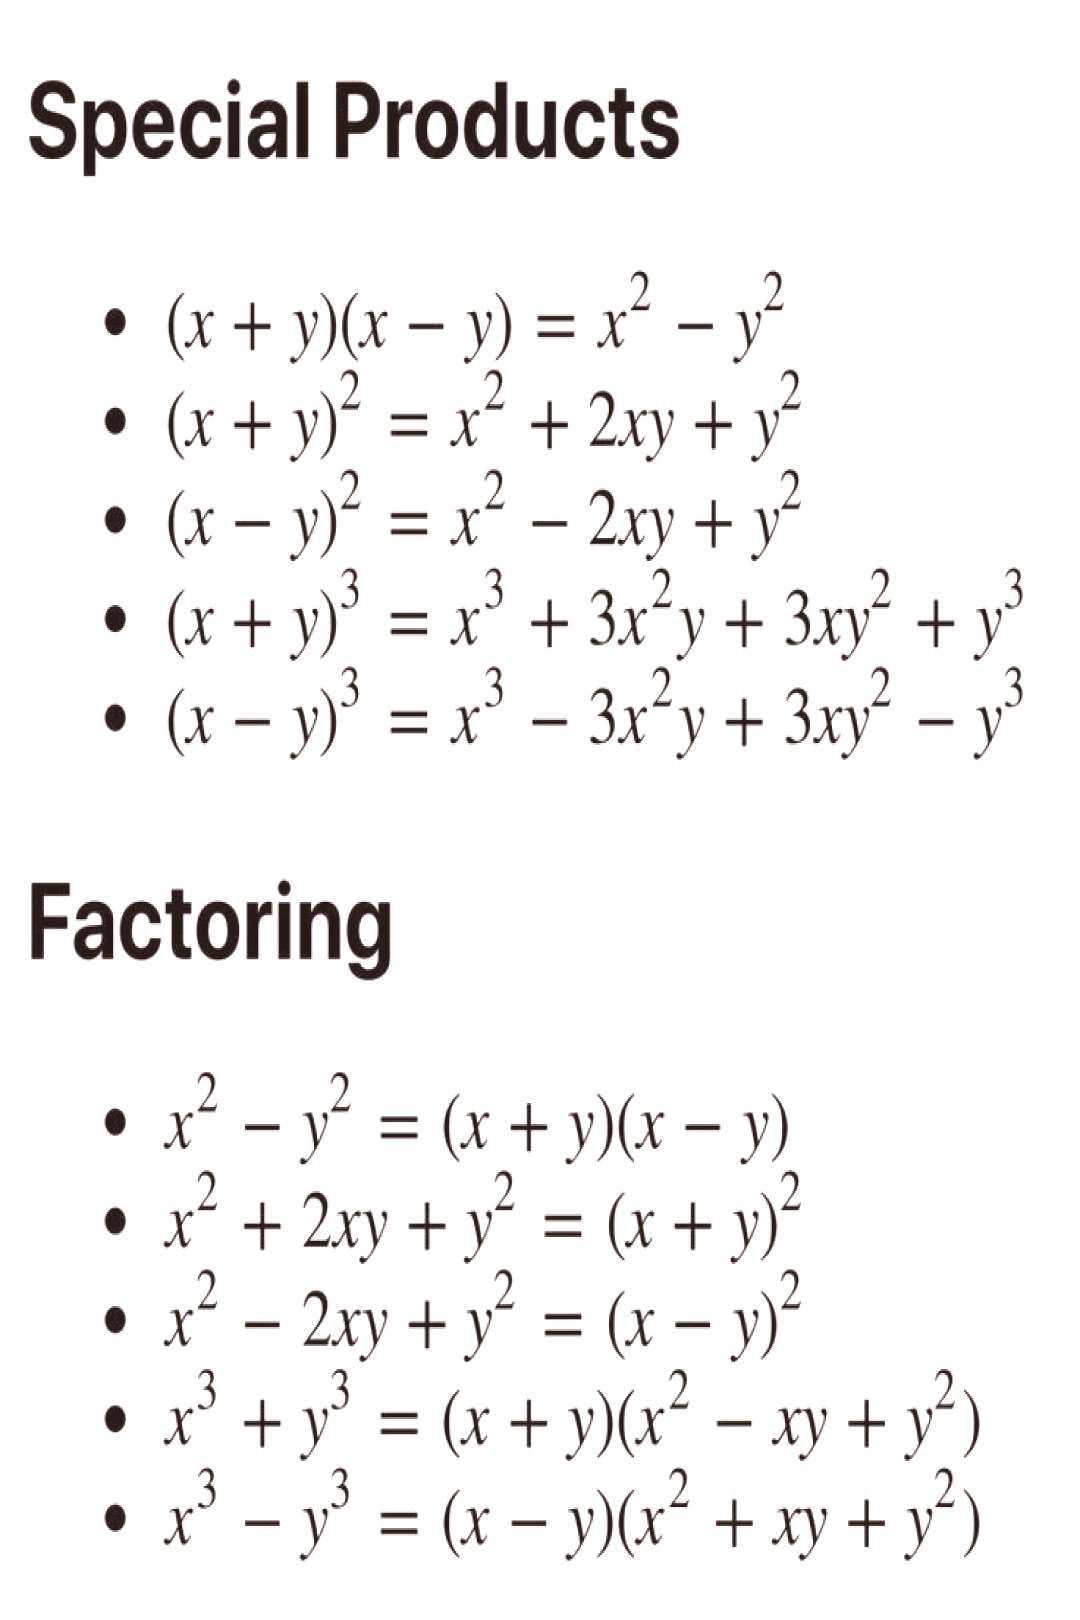 Factoring Rules In